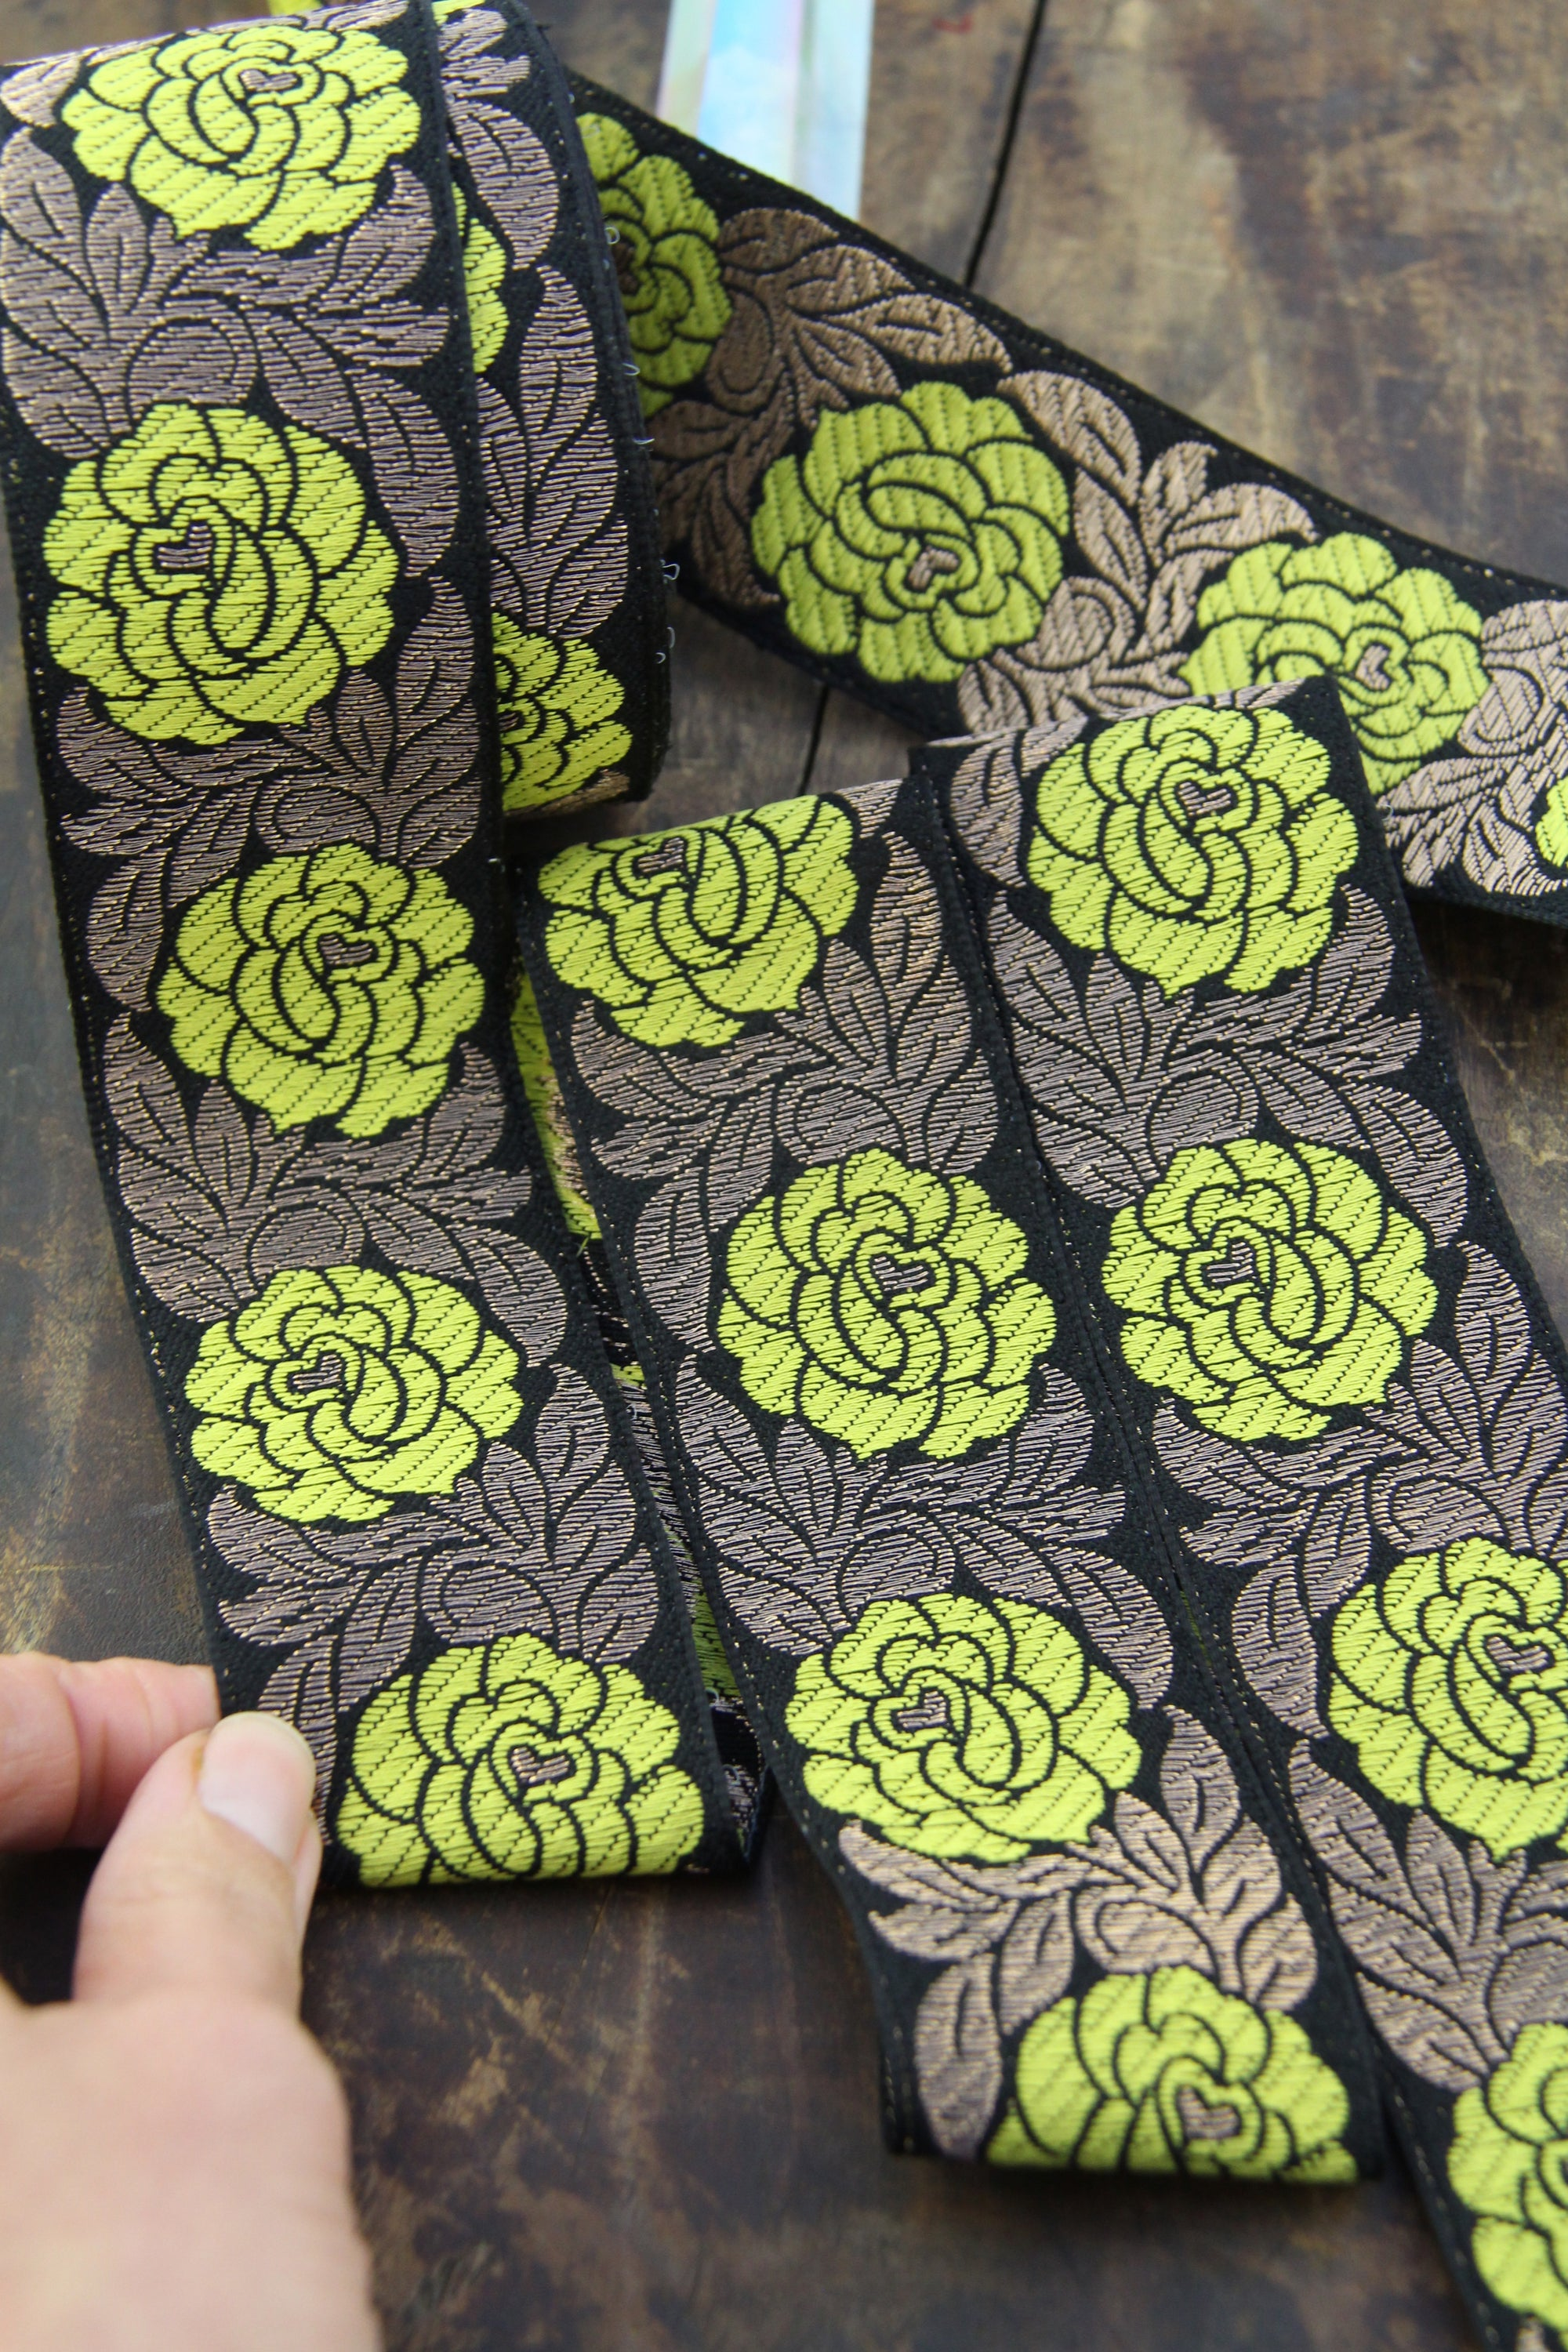 Bulk Lace~50 Yards Mint Green 2 Inch Wide Ruffled Floral Lace Trim